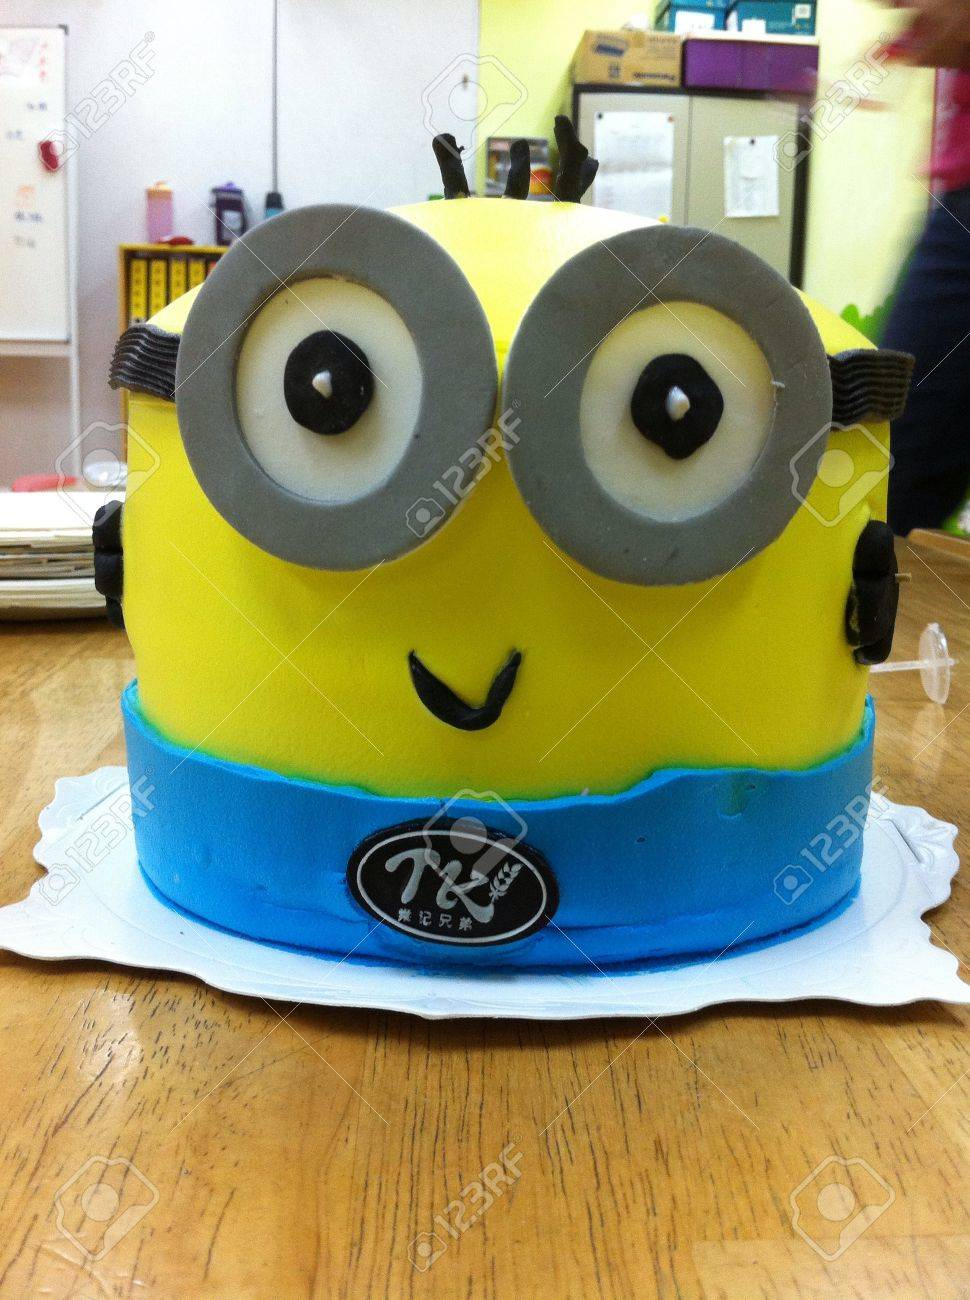 Astonishing Minions Birthday Cake Stock Photo Picture And Royalty Free Image Funny Birthday Cards Online Fluifree Goldxyz